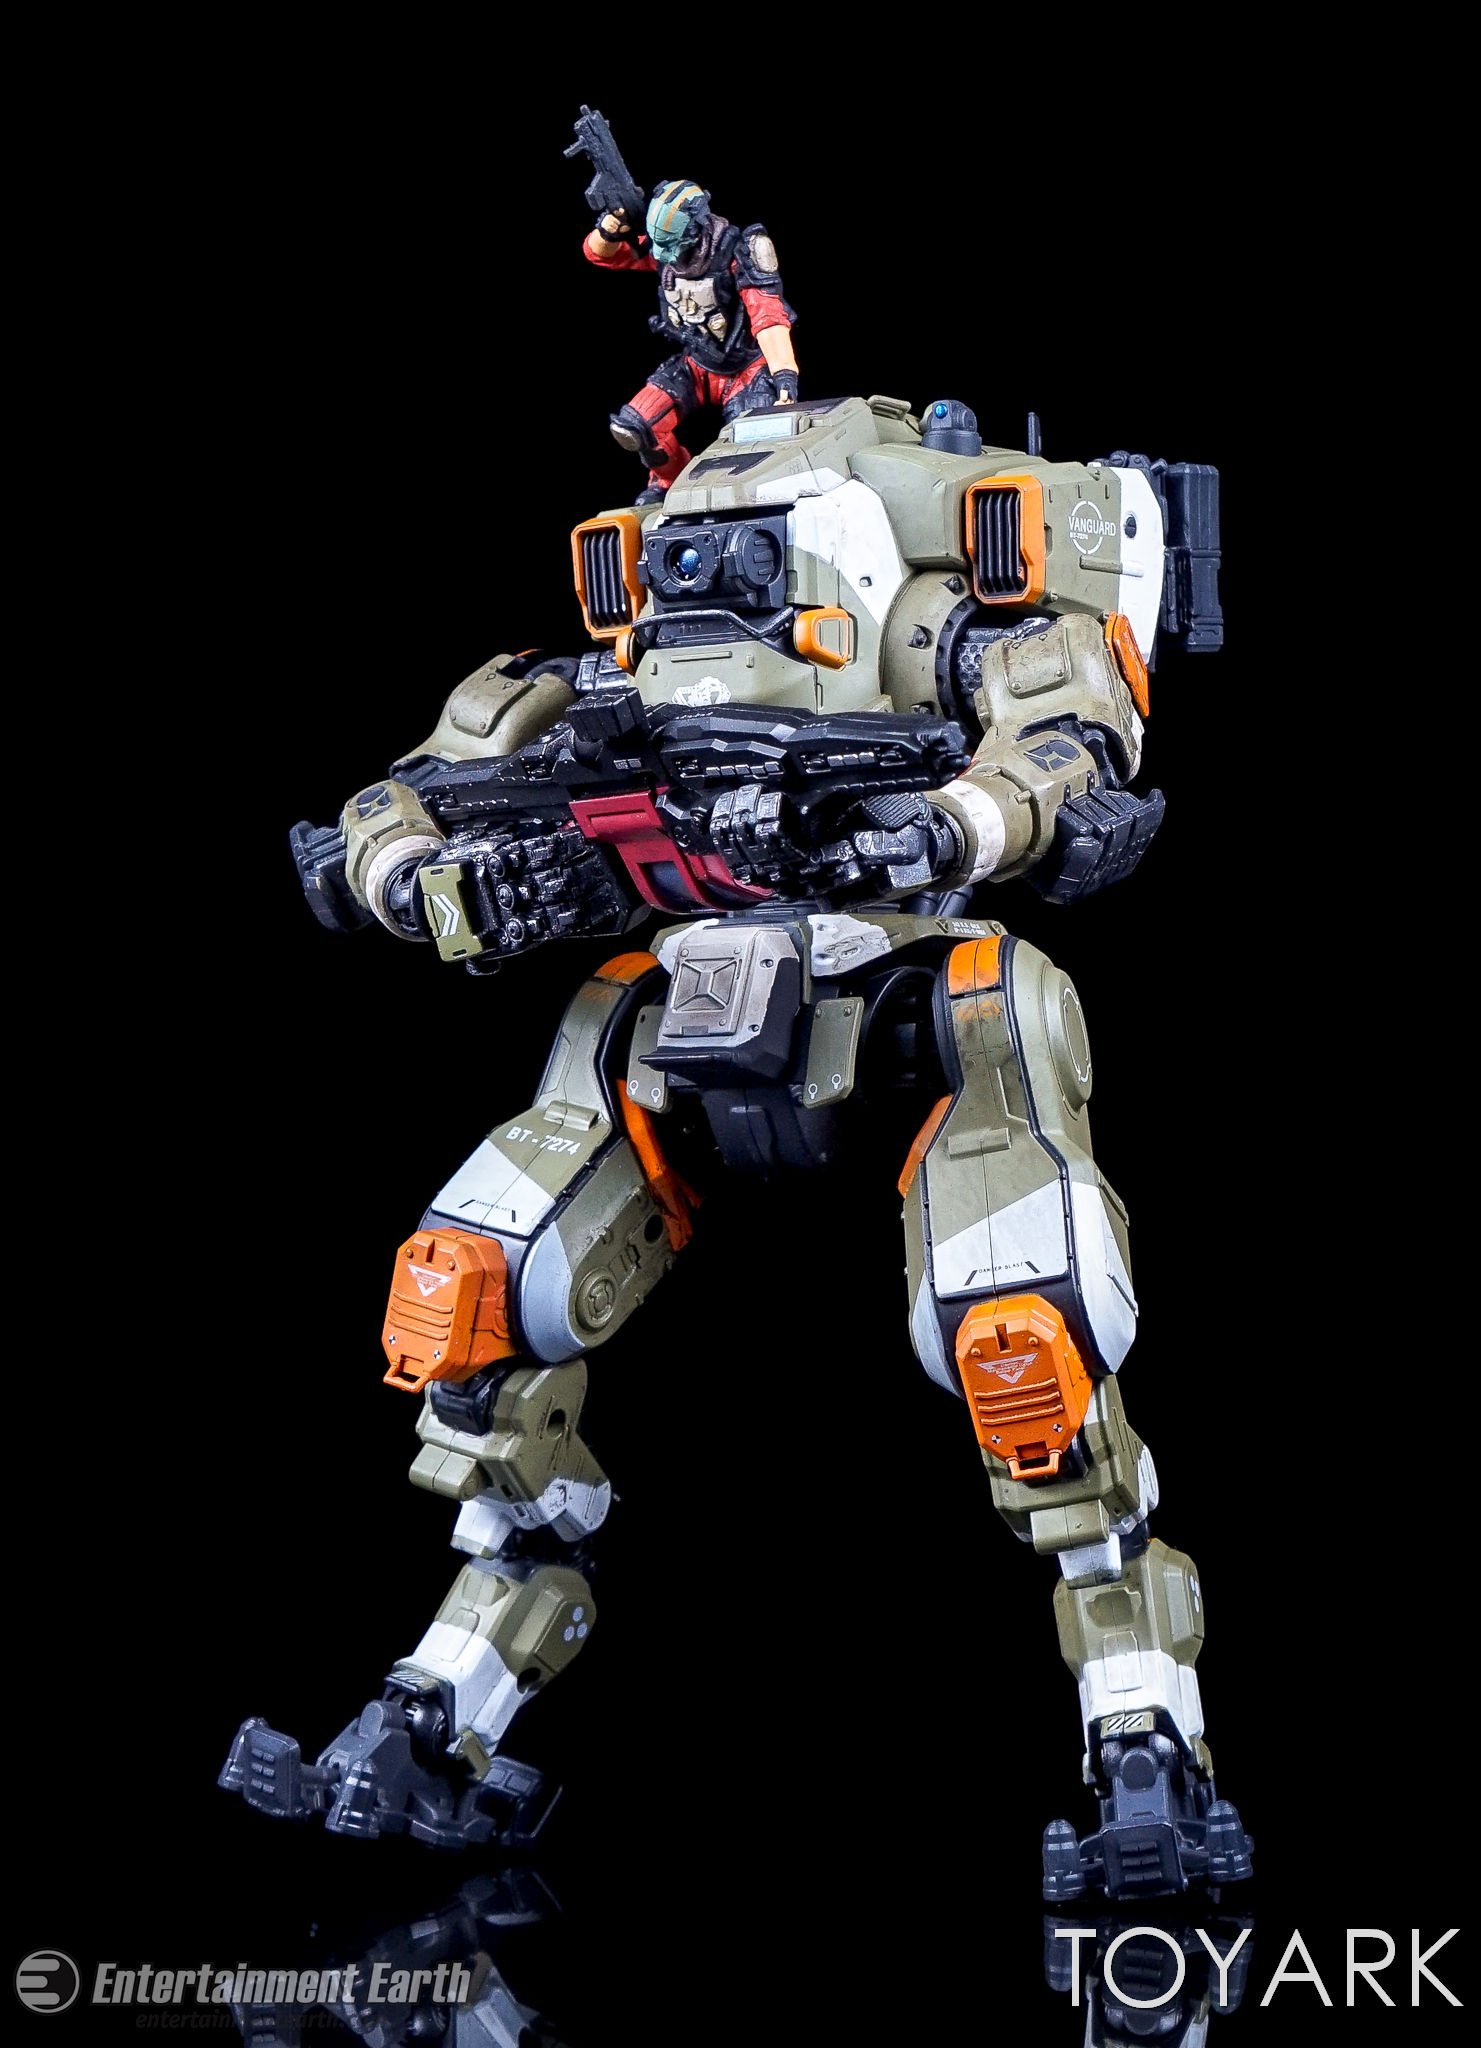 http://news.toyark.com/wp-content/uploads/sites/4/2017/04/McFarlane-BT-7274-Titanfall-2-Figure-019.jpg